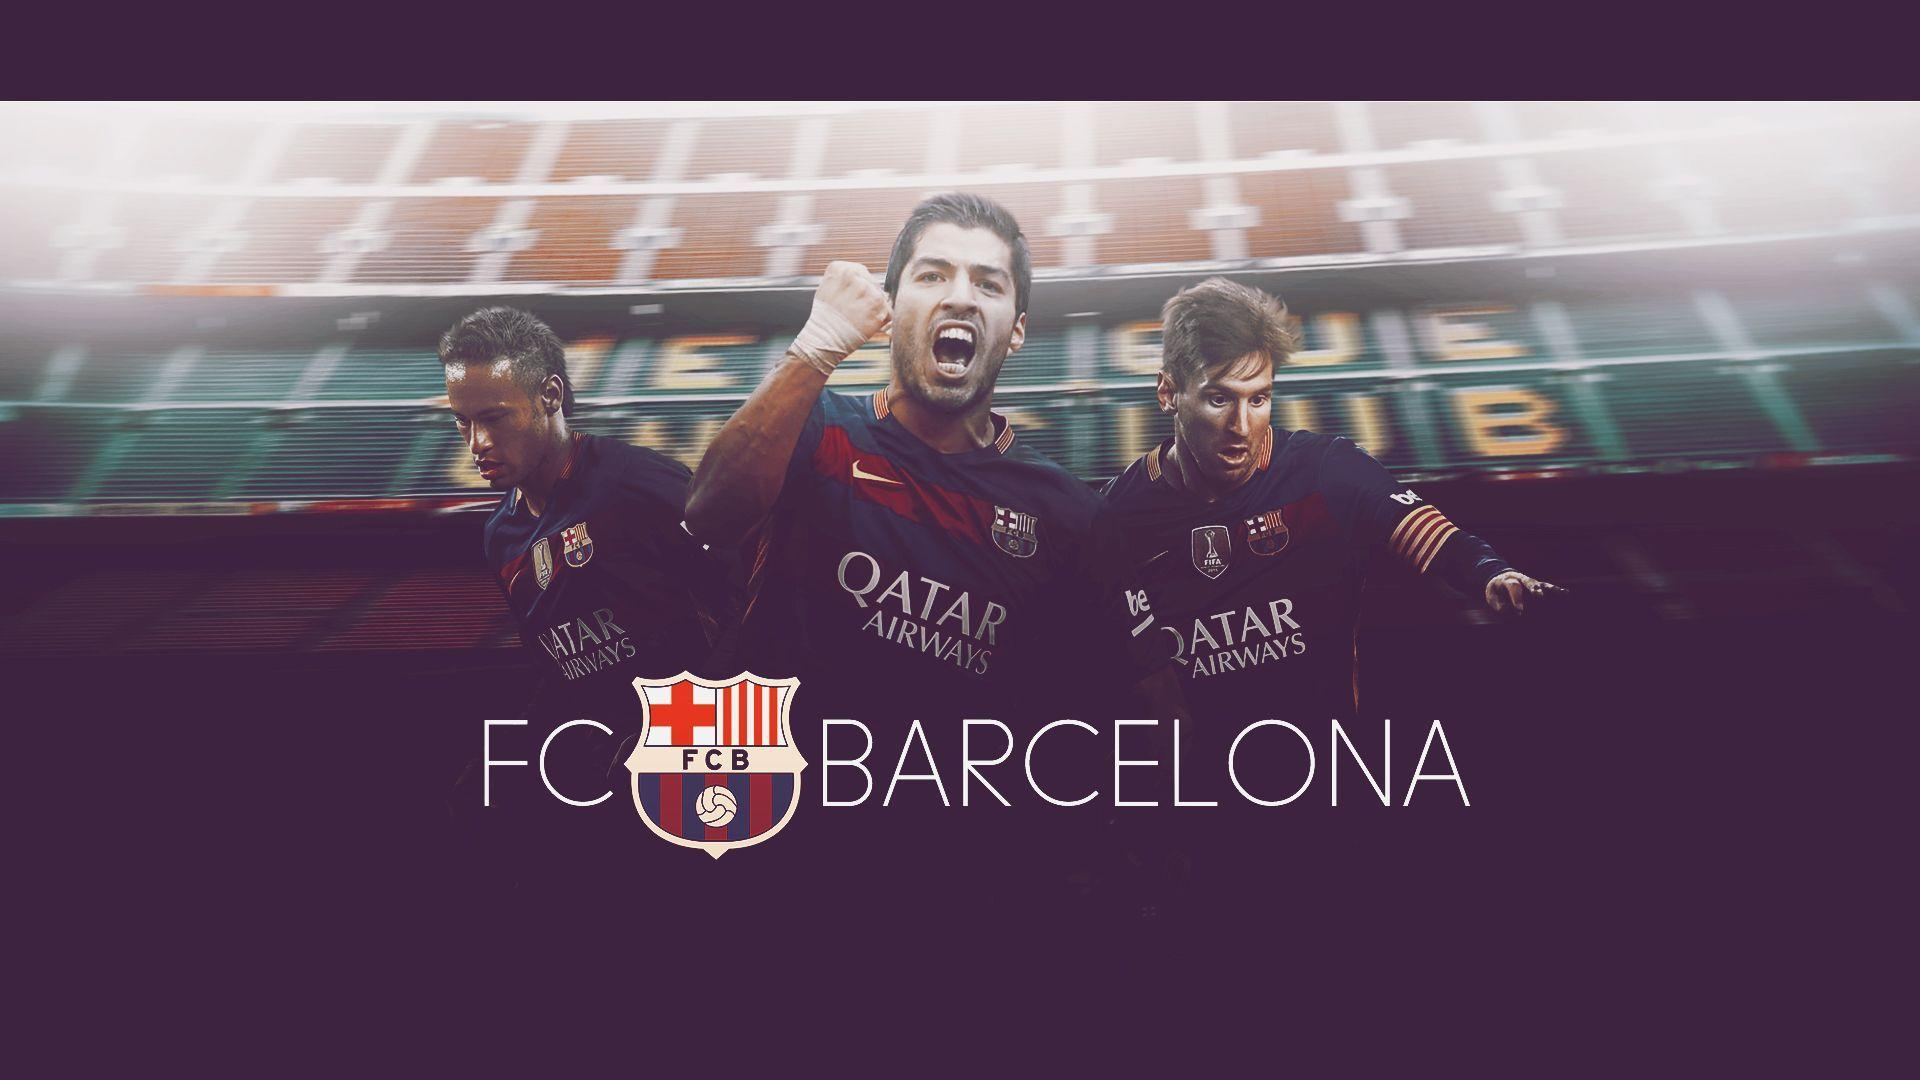 Fc Barcelona Desktop Wallpaper Hd Fc Barcelona Wallpapers 2016 Wallpaper Cave